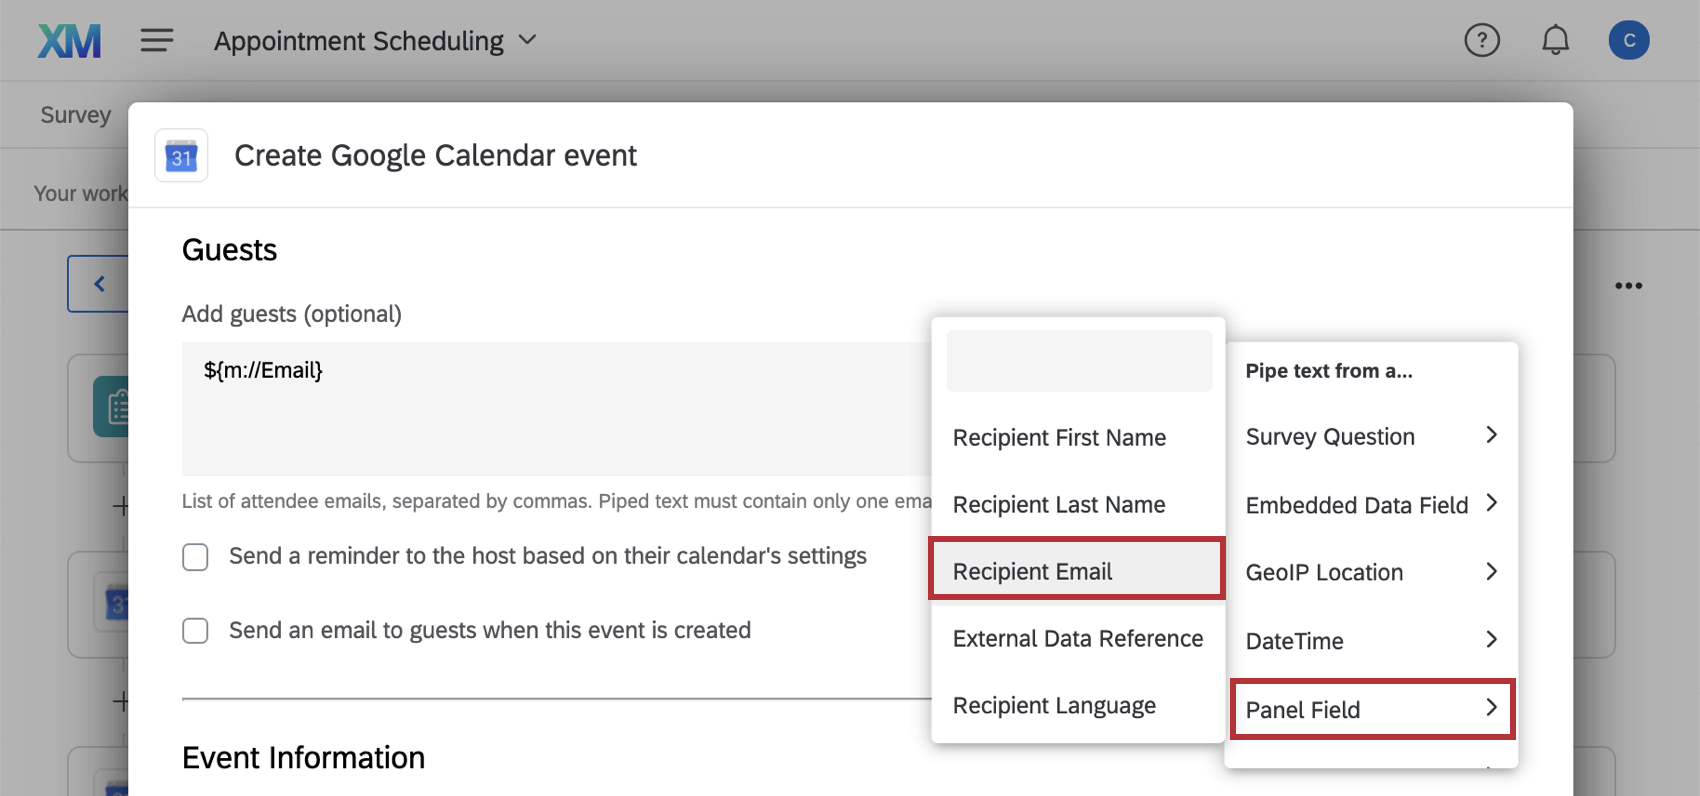 Piped text dropdown with recipient email and panel field selected.